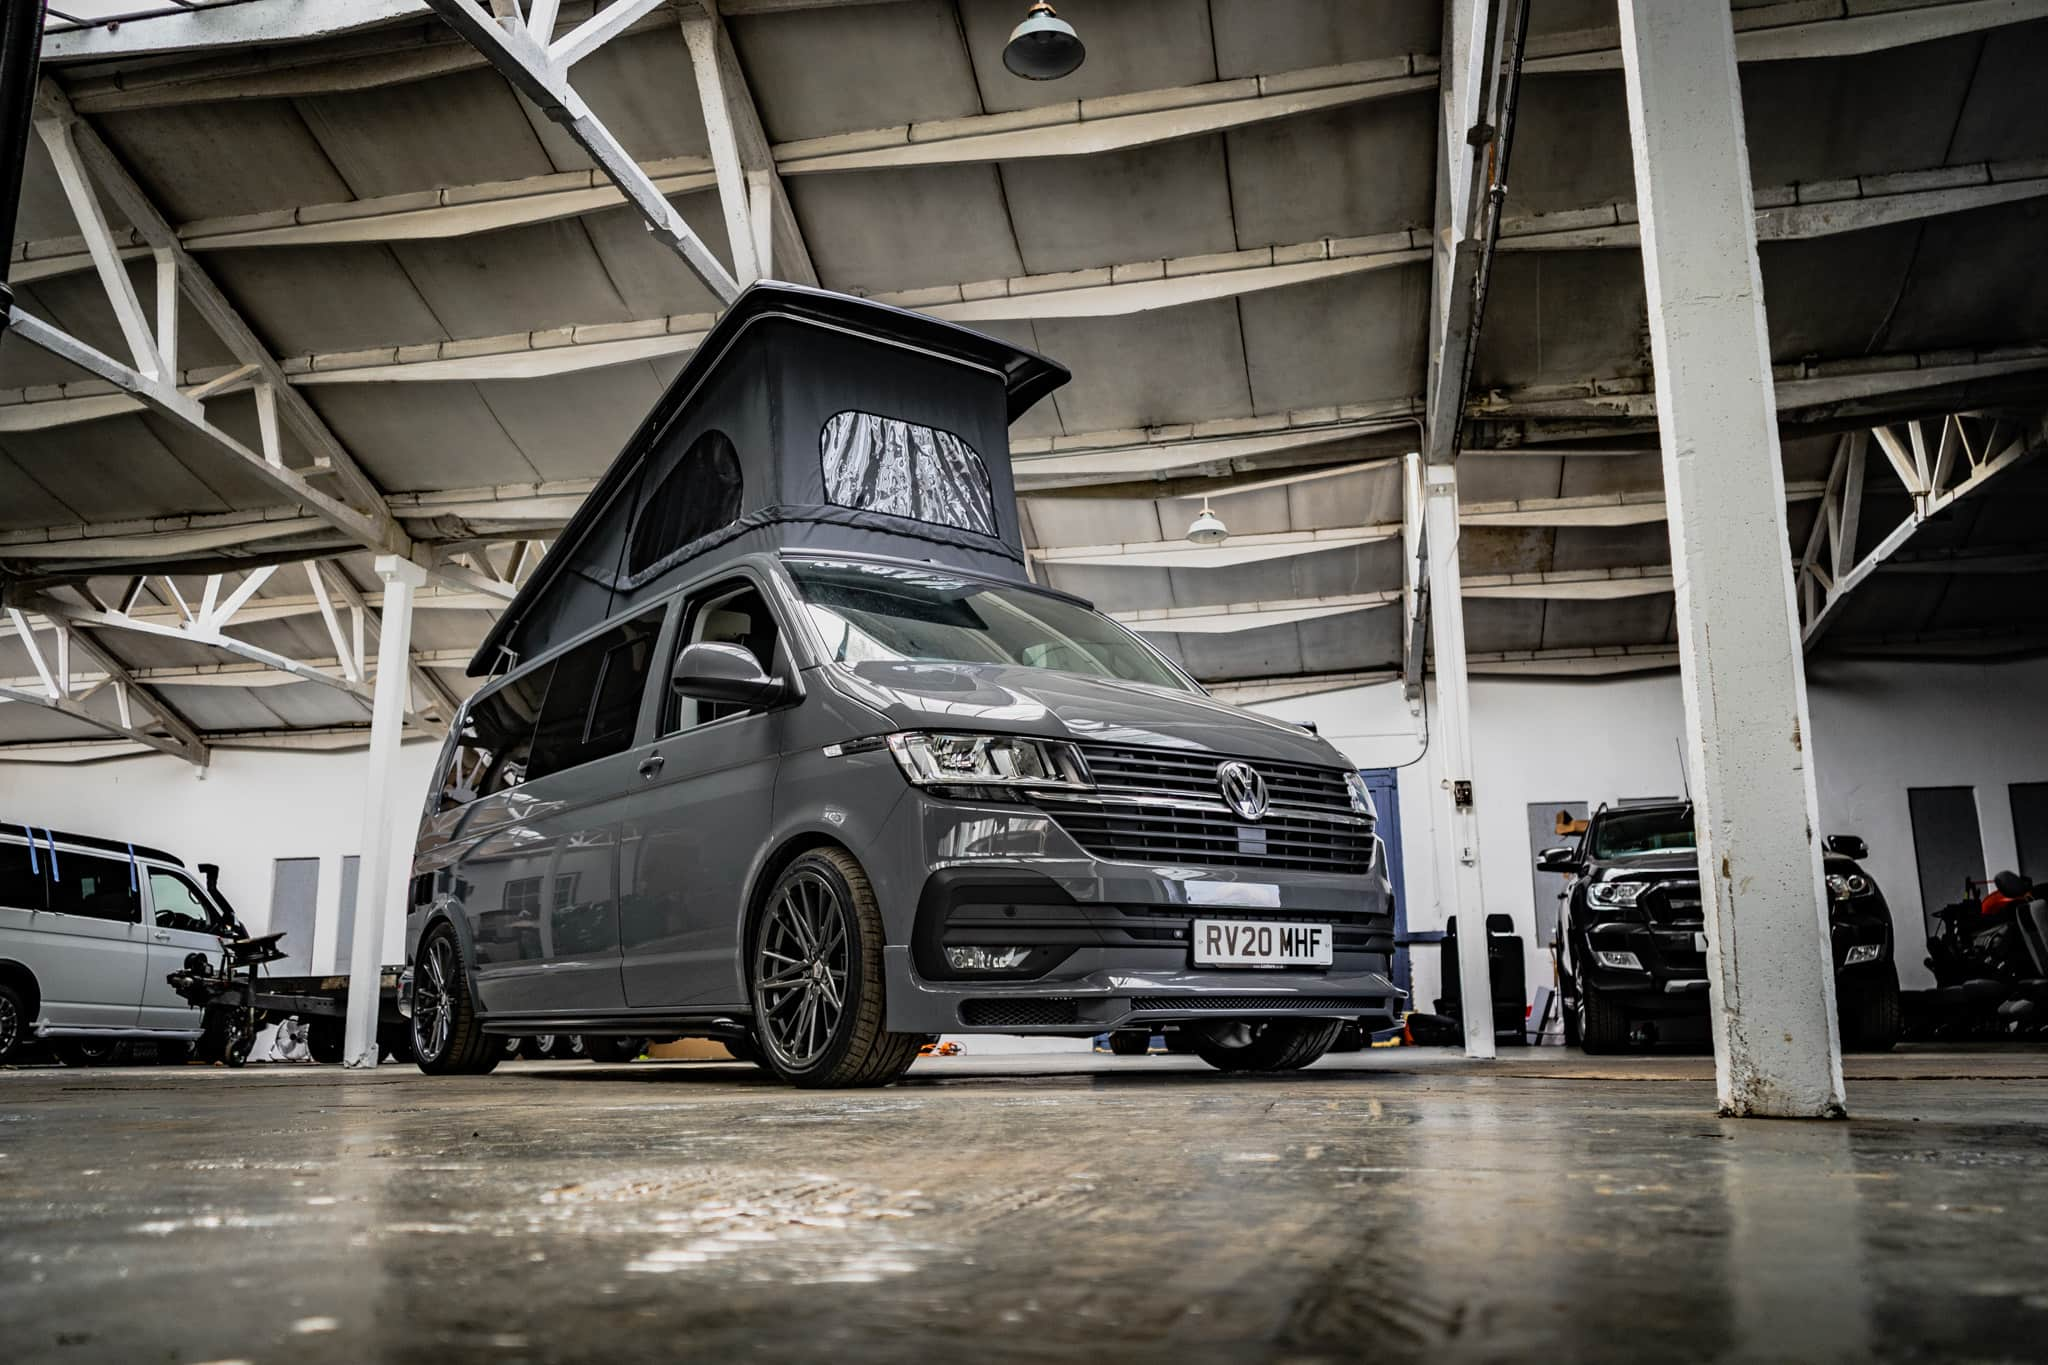 2020 VW T6.1 Highline - Pure Grey 2.0 TDI - Pop Top Roof - 6th Sep